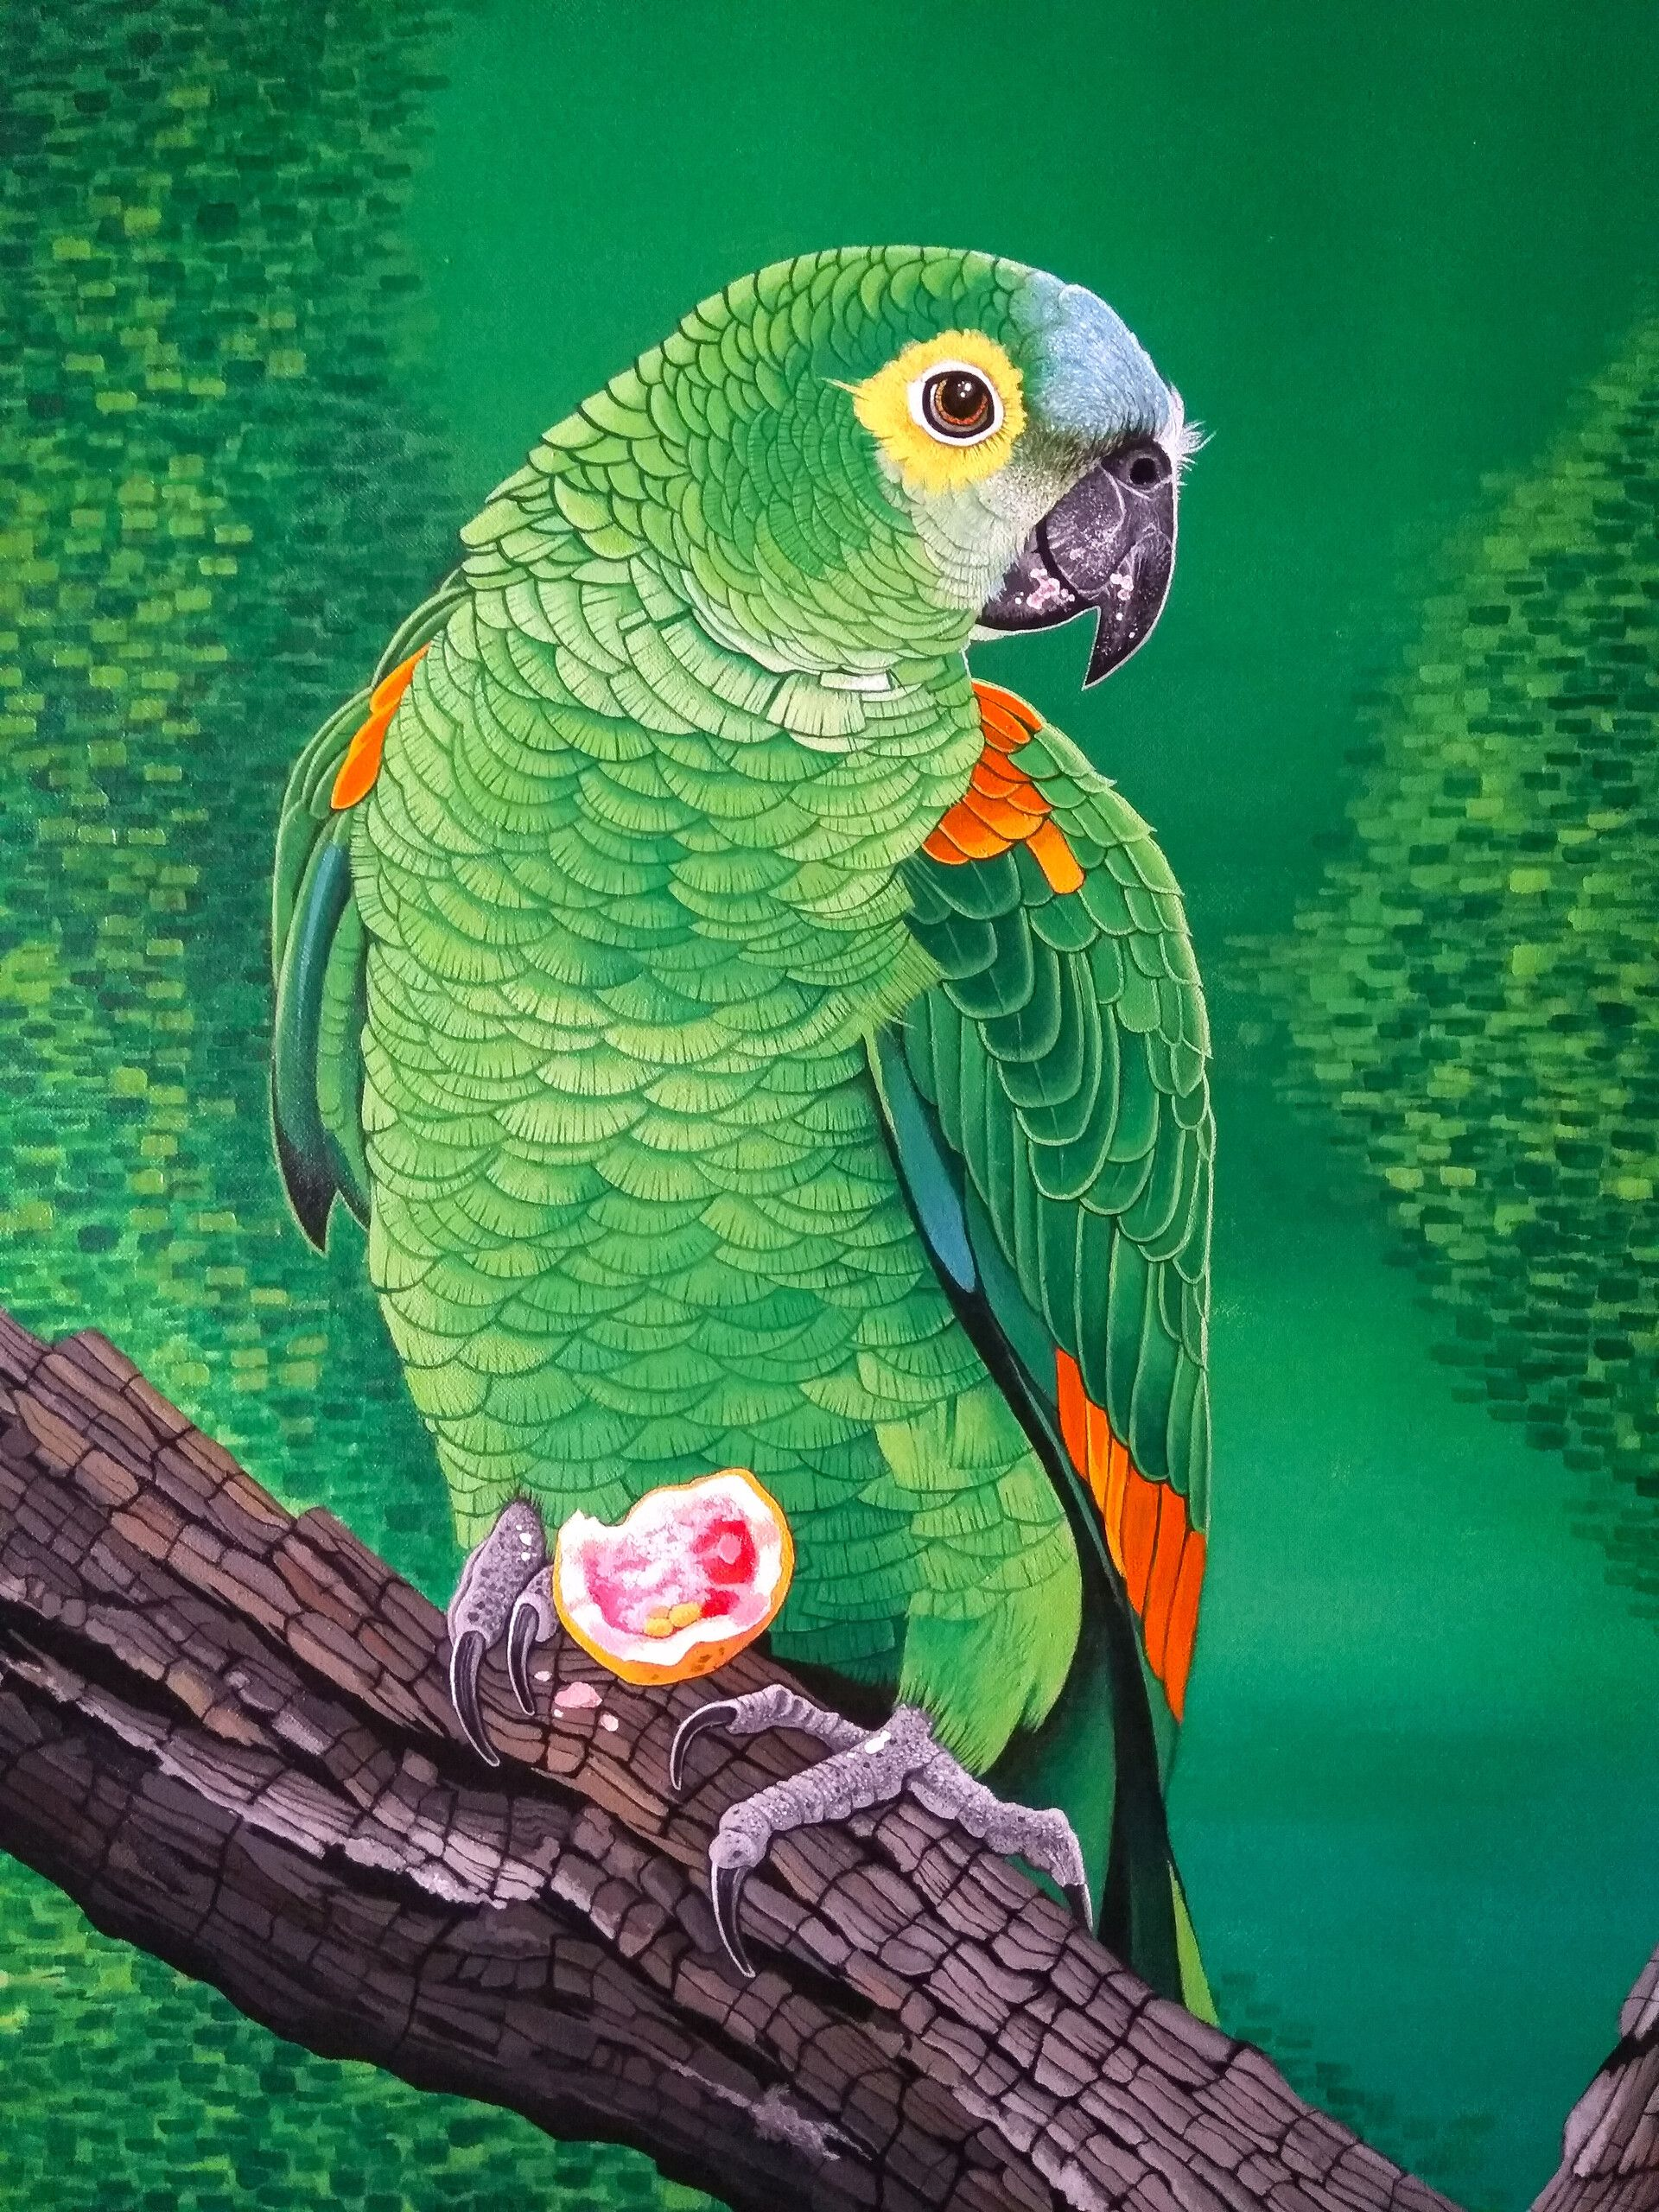 63317 download wallpaper Macaw, Parrots, Bird, Bright, Branch, Art screensavers and pictures for free